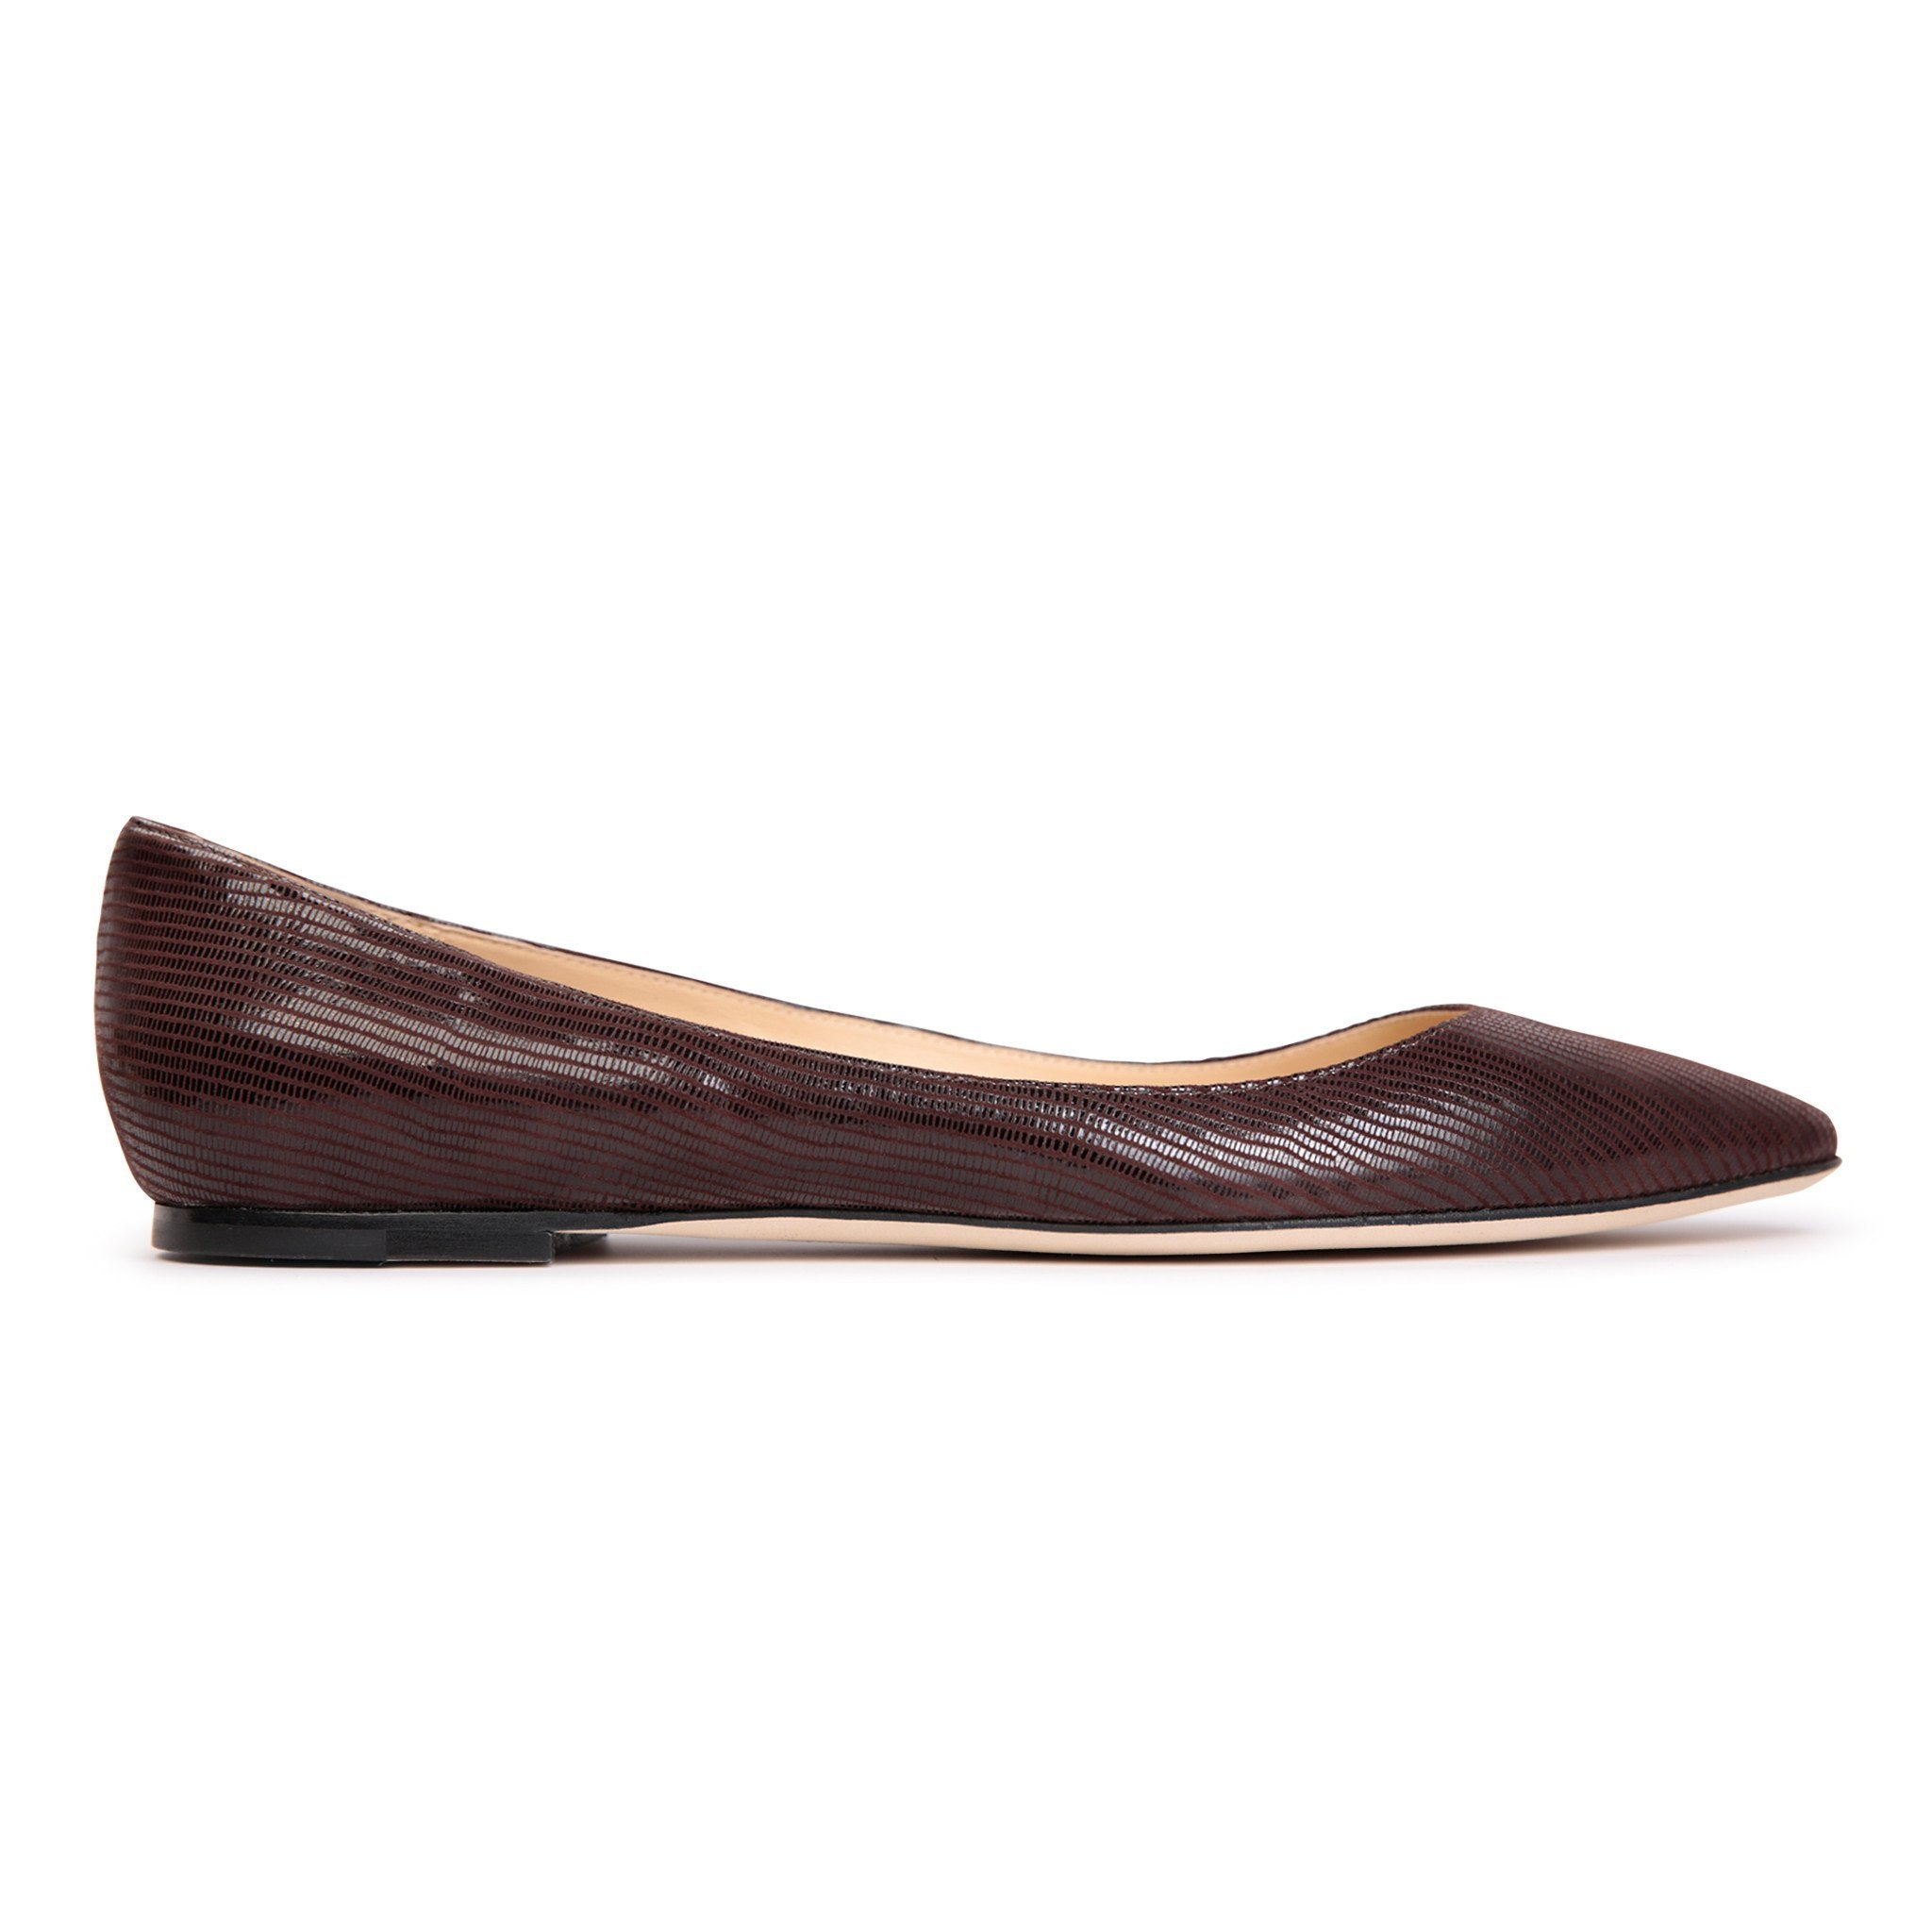 SIENA - Varanus Espresso, VIAJIYU - Women's Hand Made Sustainable Luxury Shoes. Made in Italy. Made to Order.